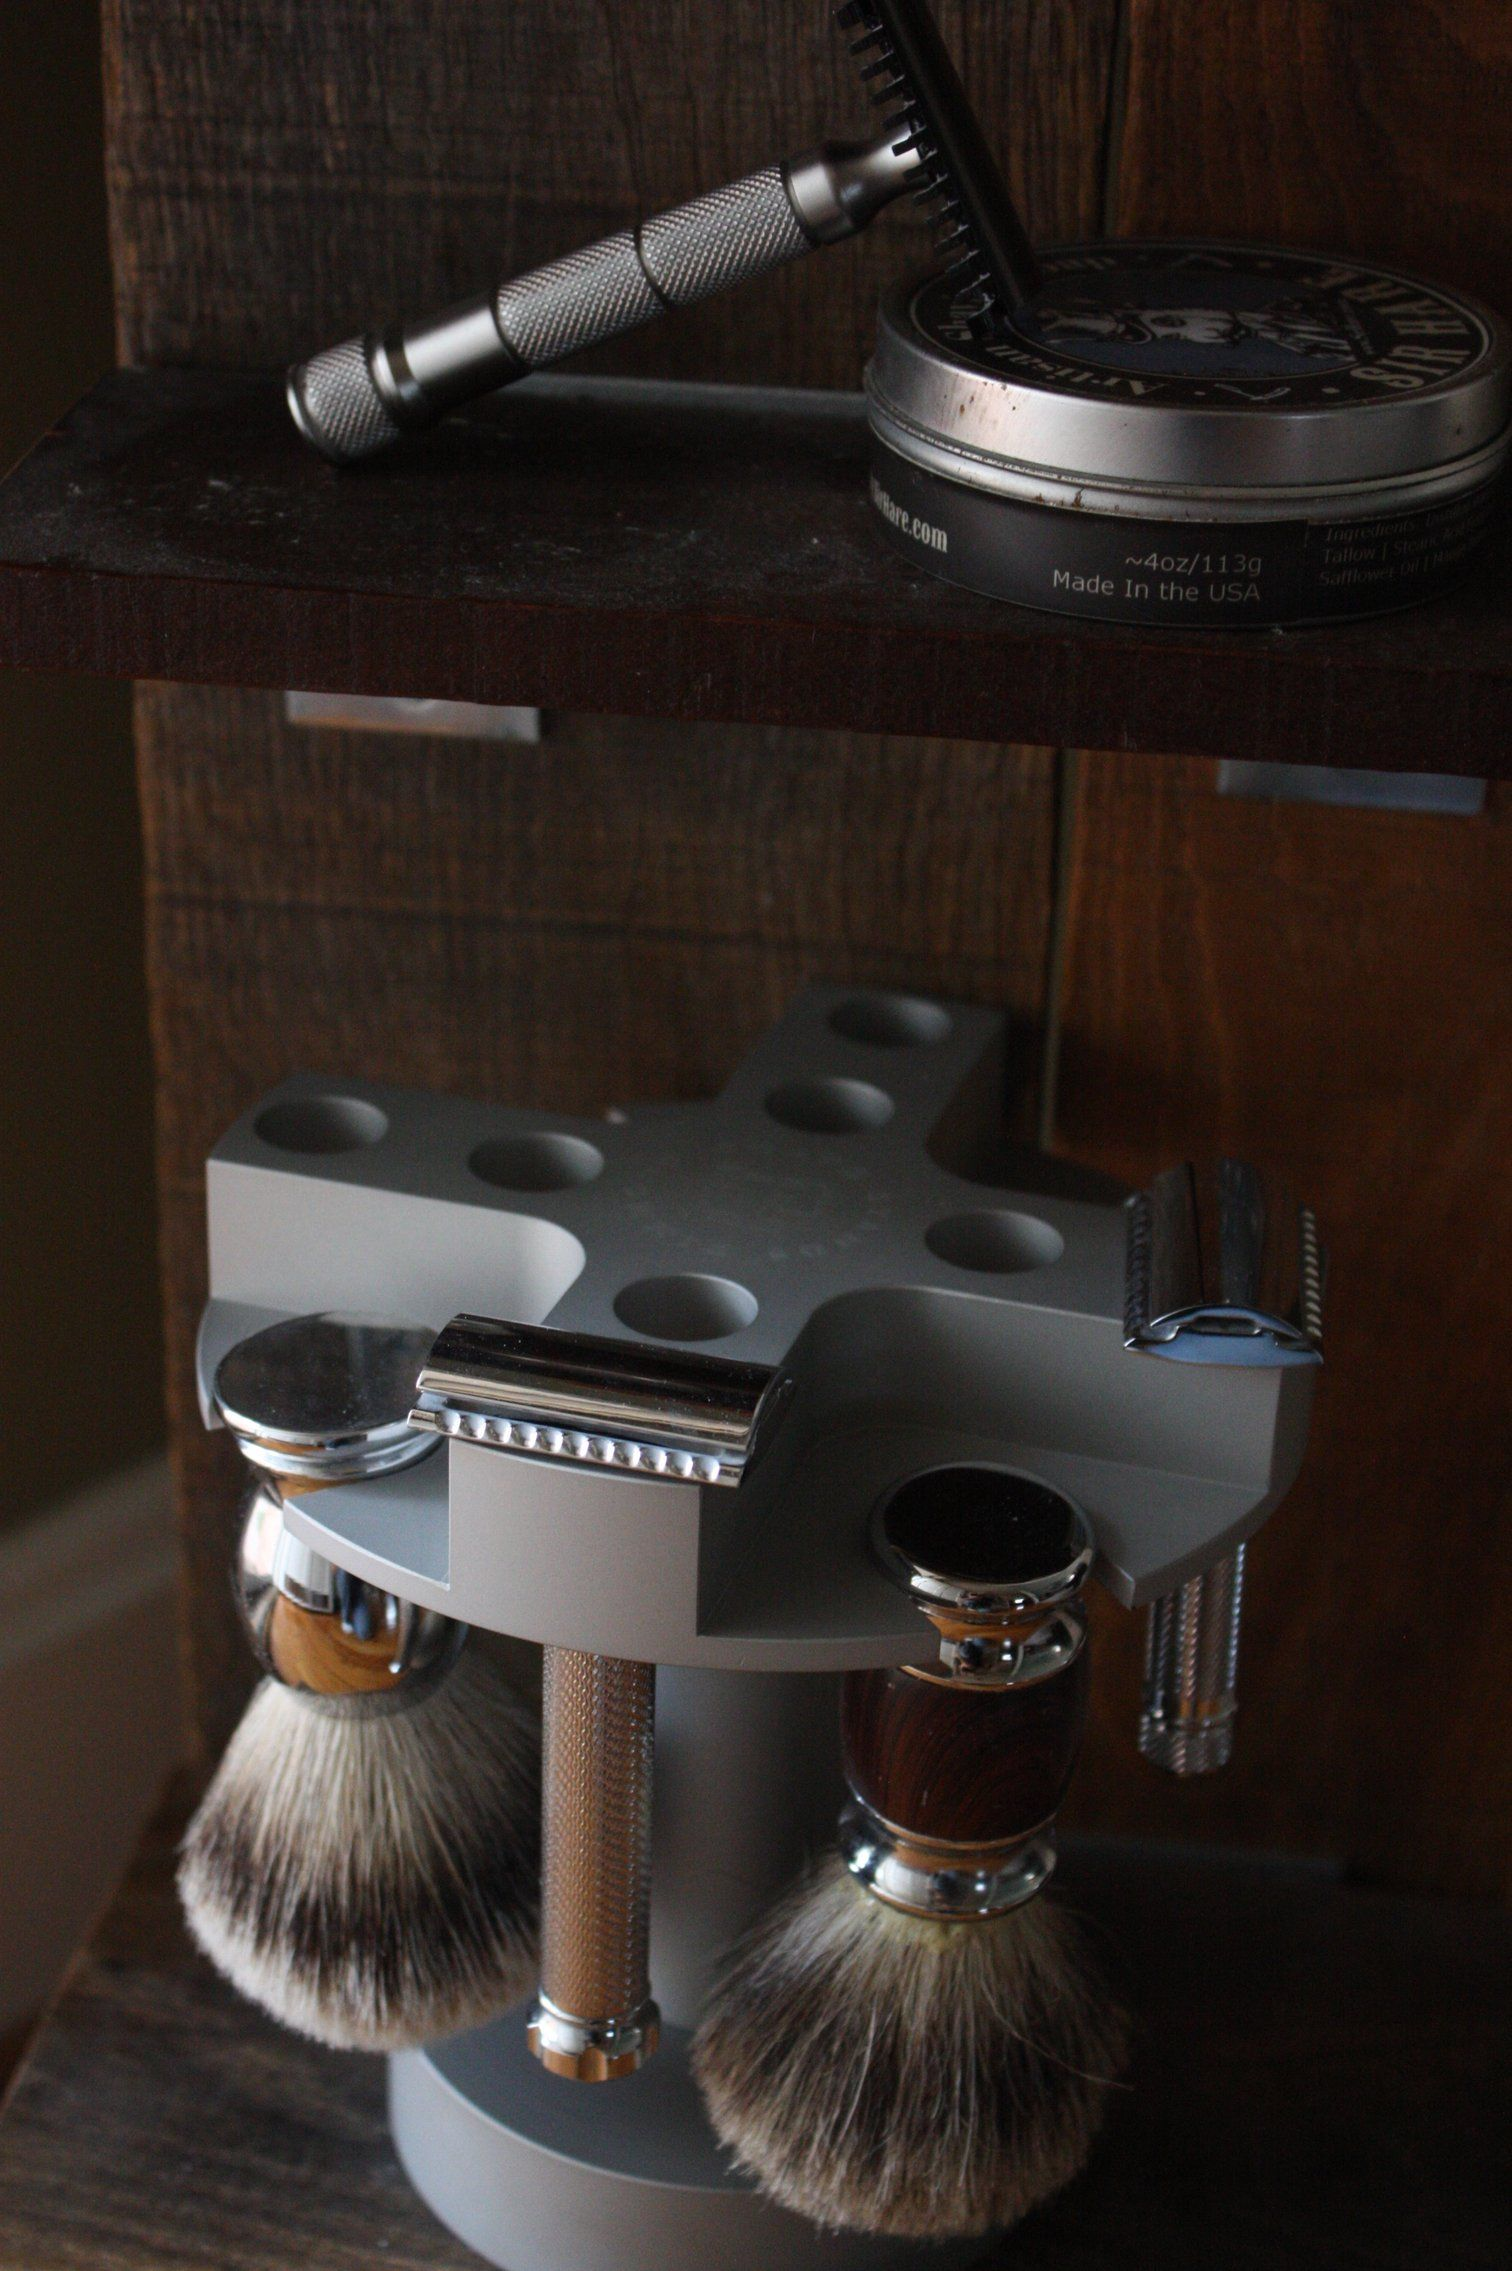 Shave Razor Brush Storage Timmons Shave Stands Wet shaving